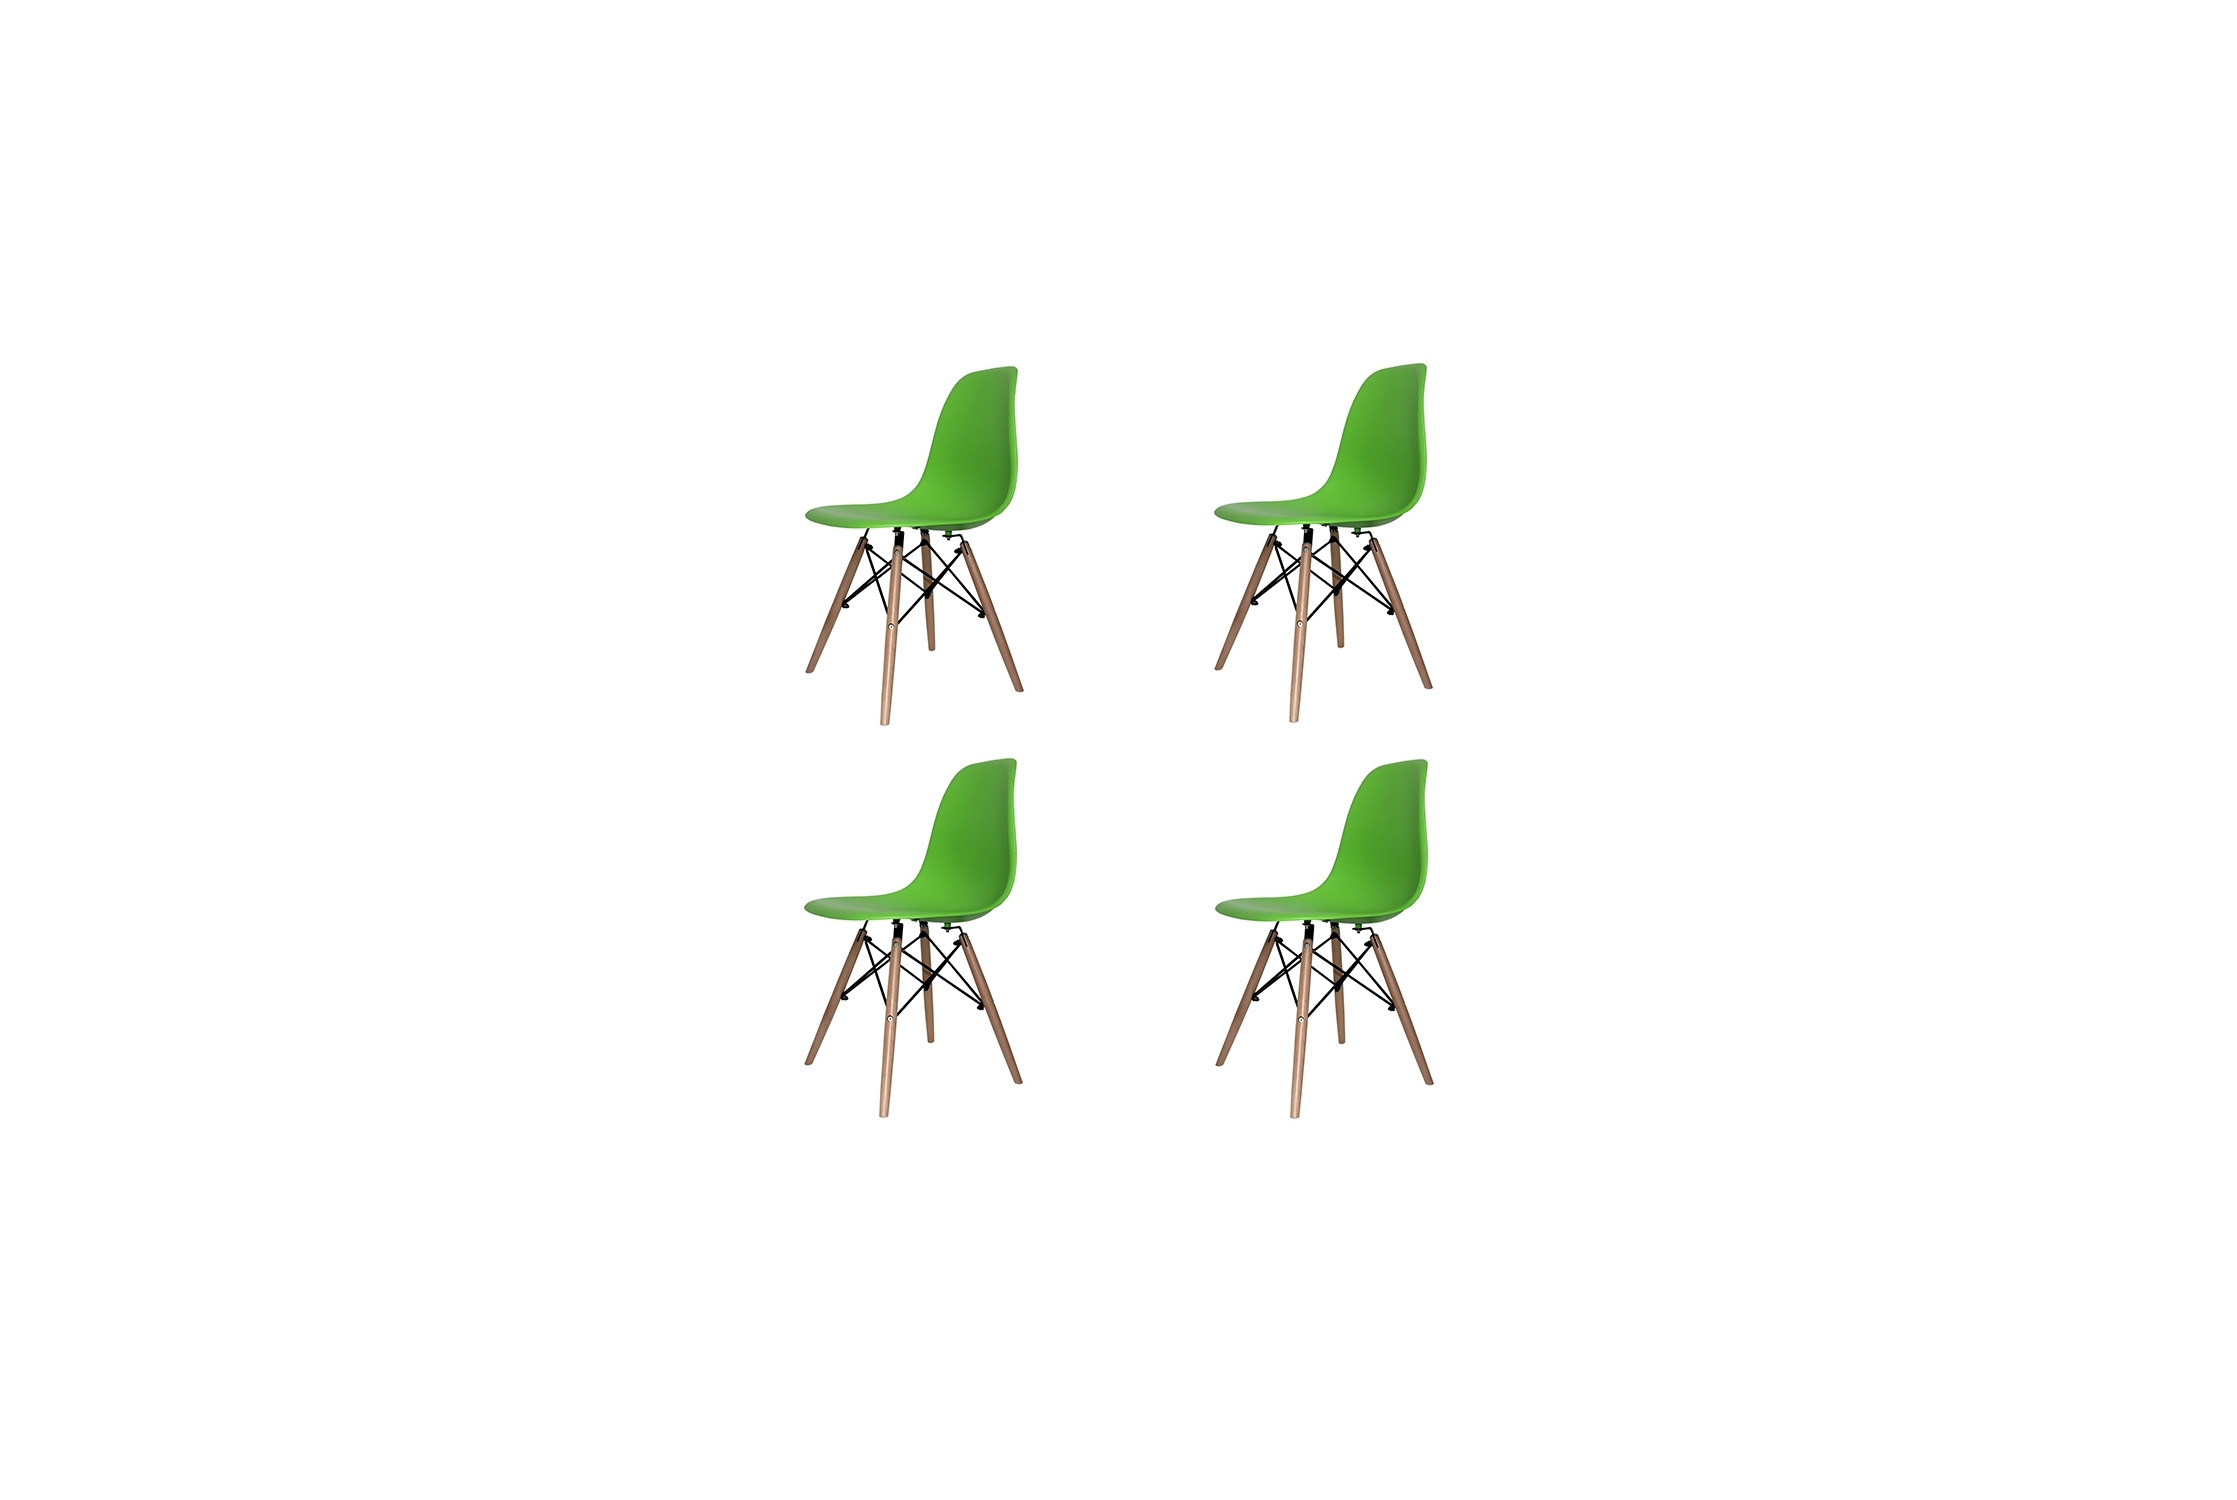 PACK 4 CHAISES TOWER WOOD VERTES EXTRA QUALITY